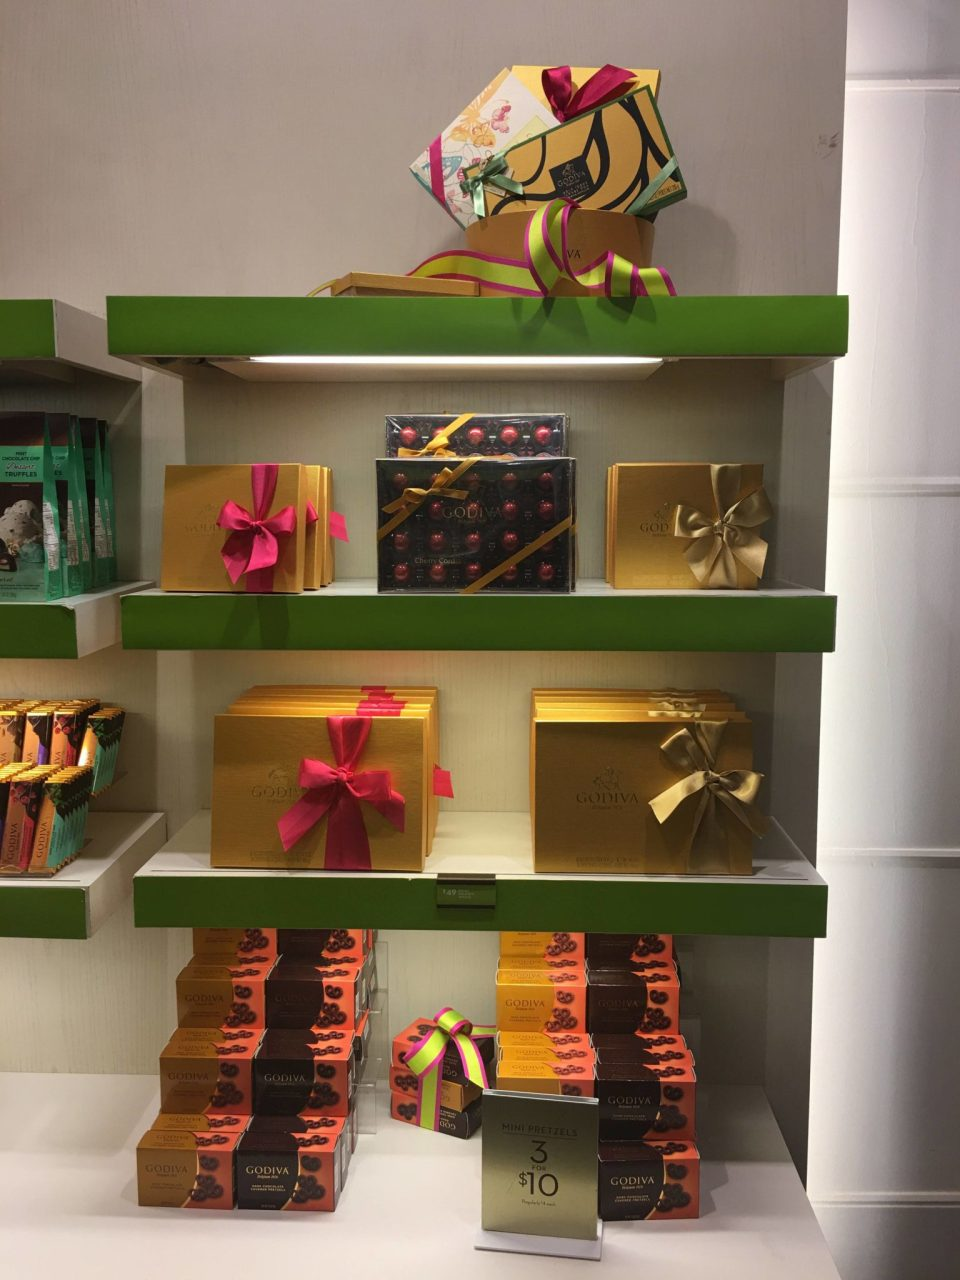 Still wondering what to get mom for Mother's Day? Get her what she really wants! Here it is -- Mom wants all the chocolate for Mother's Day #OMGodiva